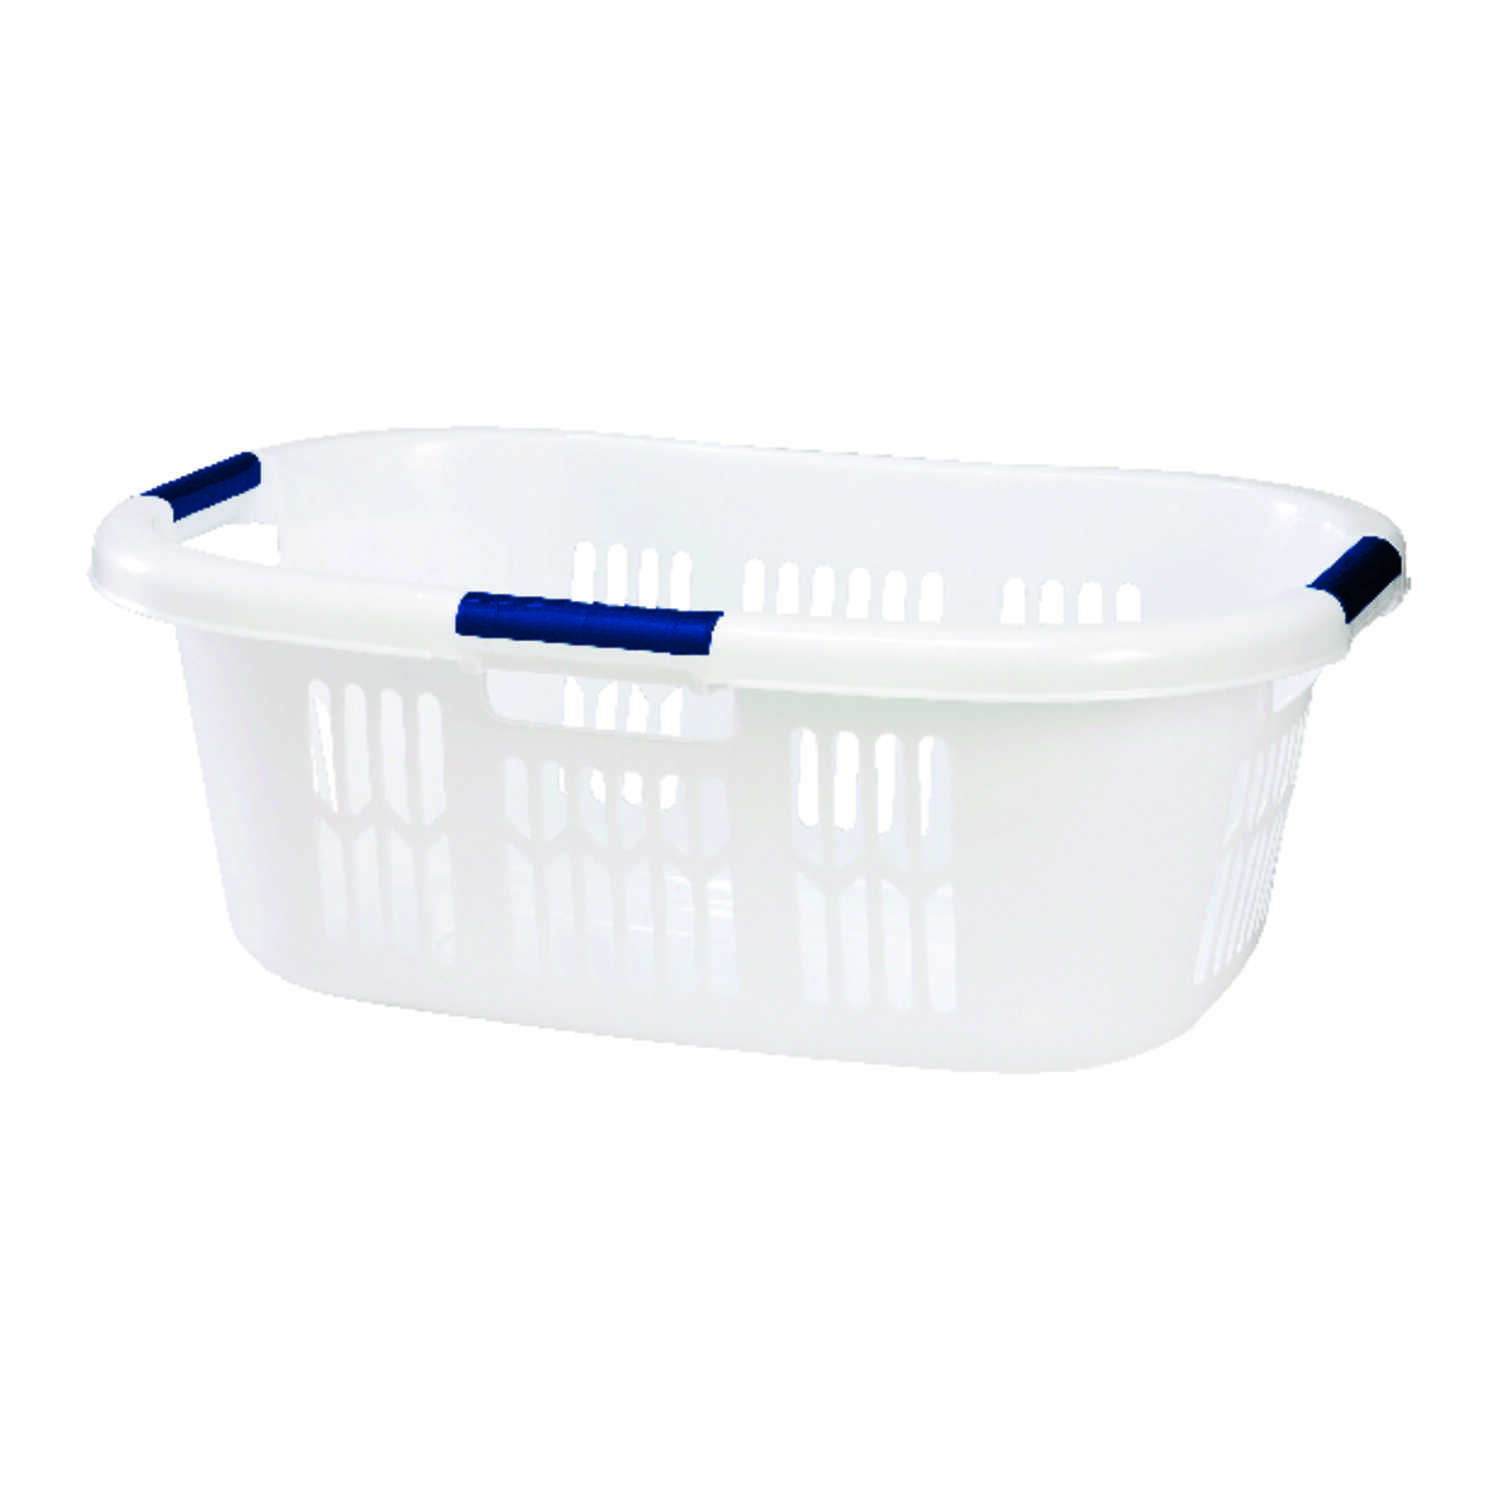 Rubbermaid Laundry Basket 25-3/4 in. x 17 in. x 9-1/2 in. 1 bushel White